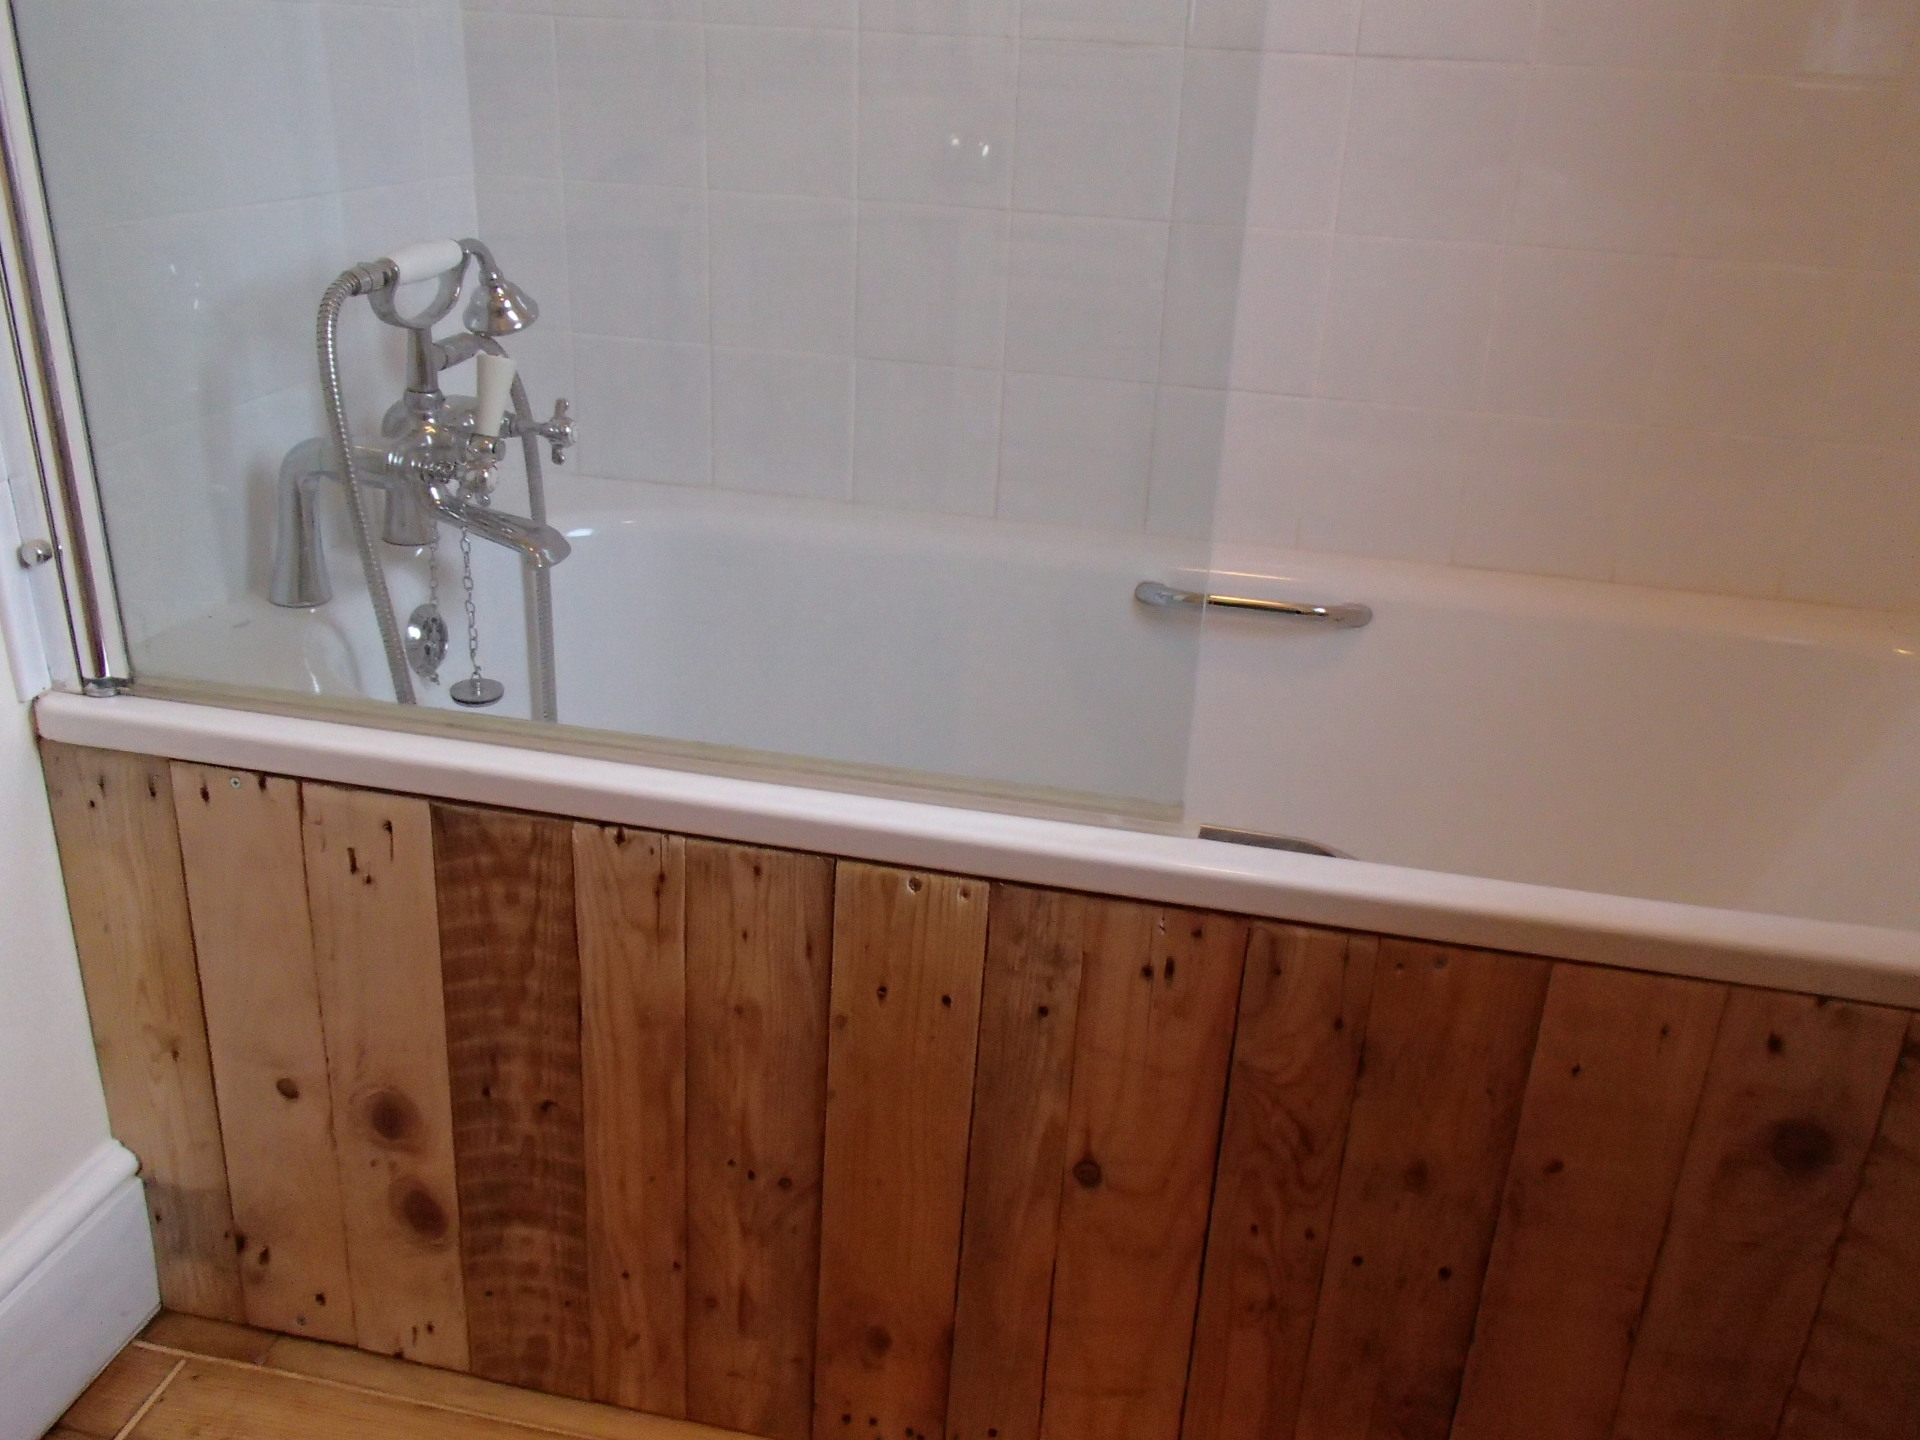 bathrooms, bathroom fitter, builder, tiling, tiler, templecombe, somerset, dorset